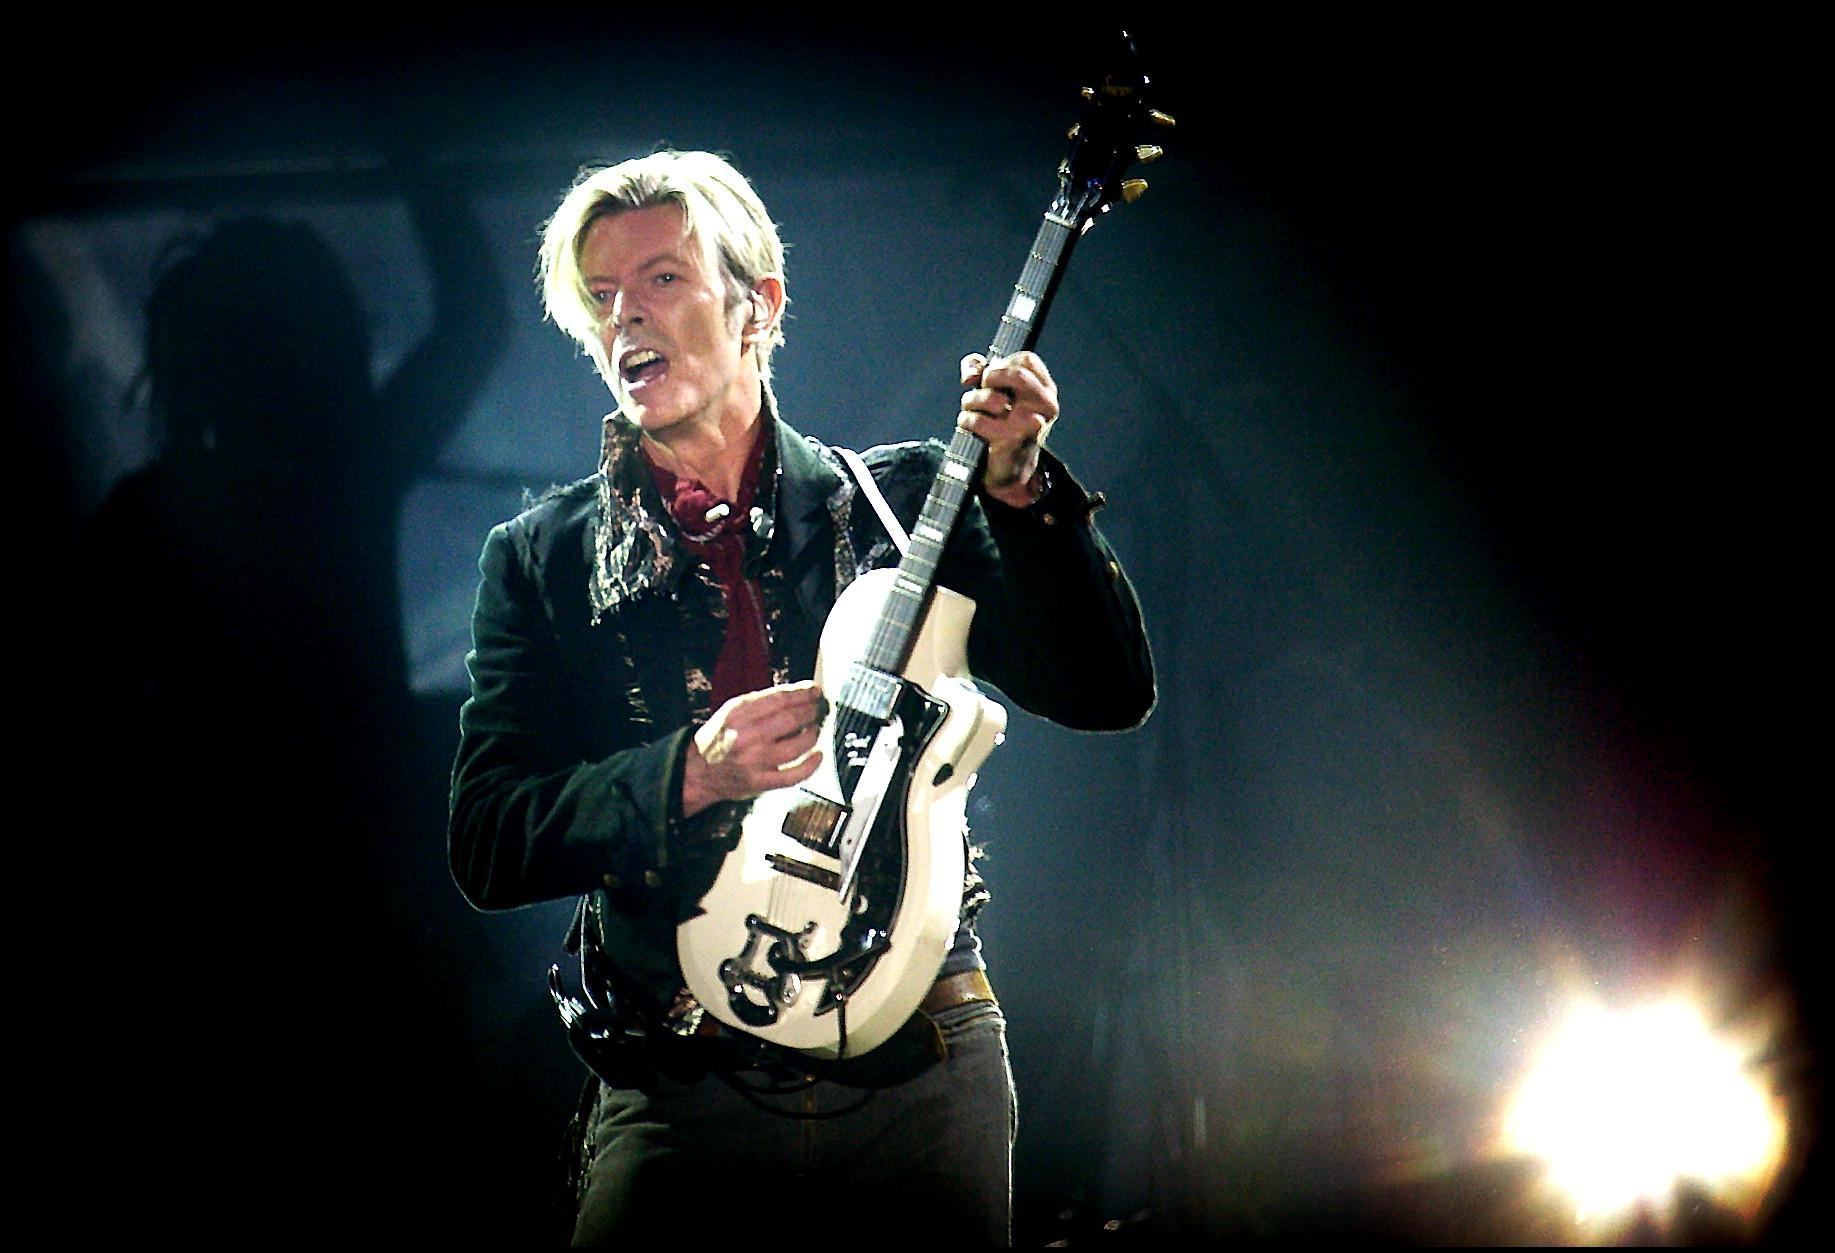 These are David Bowie's favorite albums of all-time